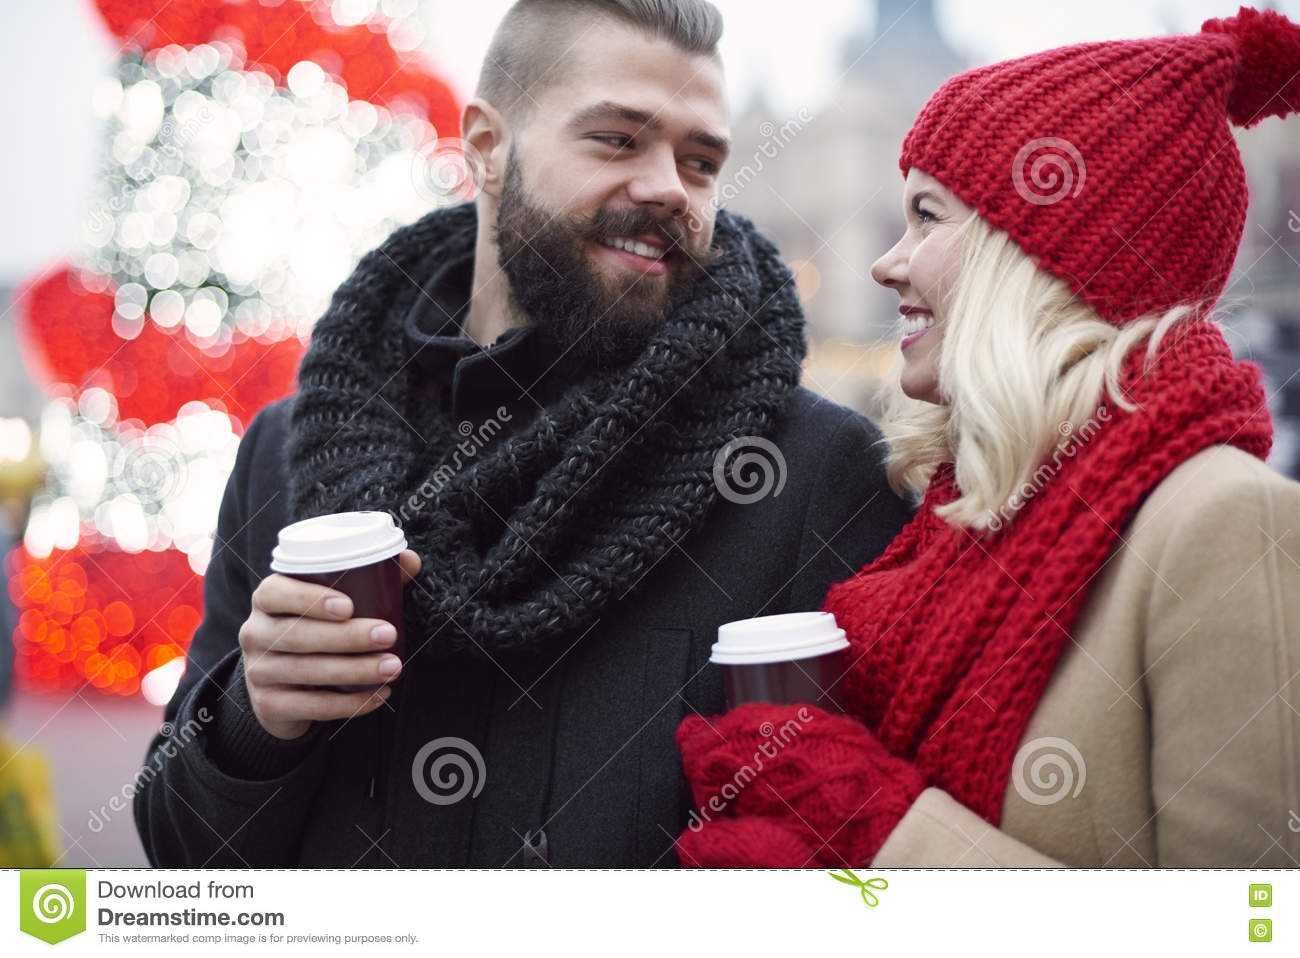 Christmas market with loving person